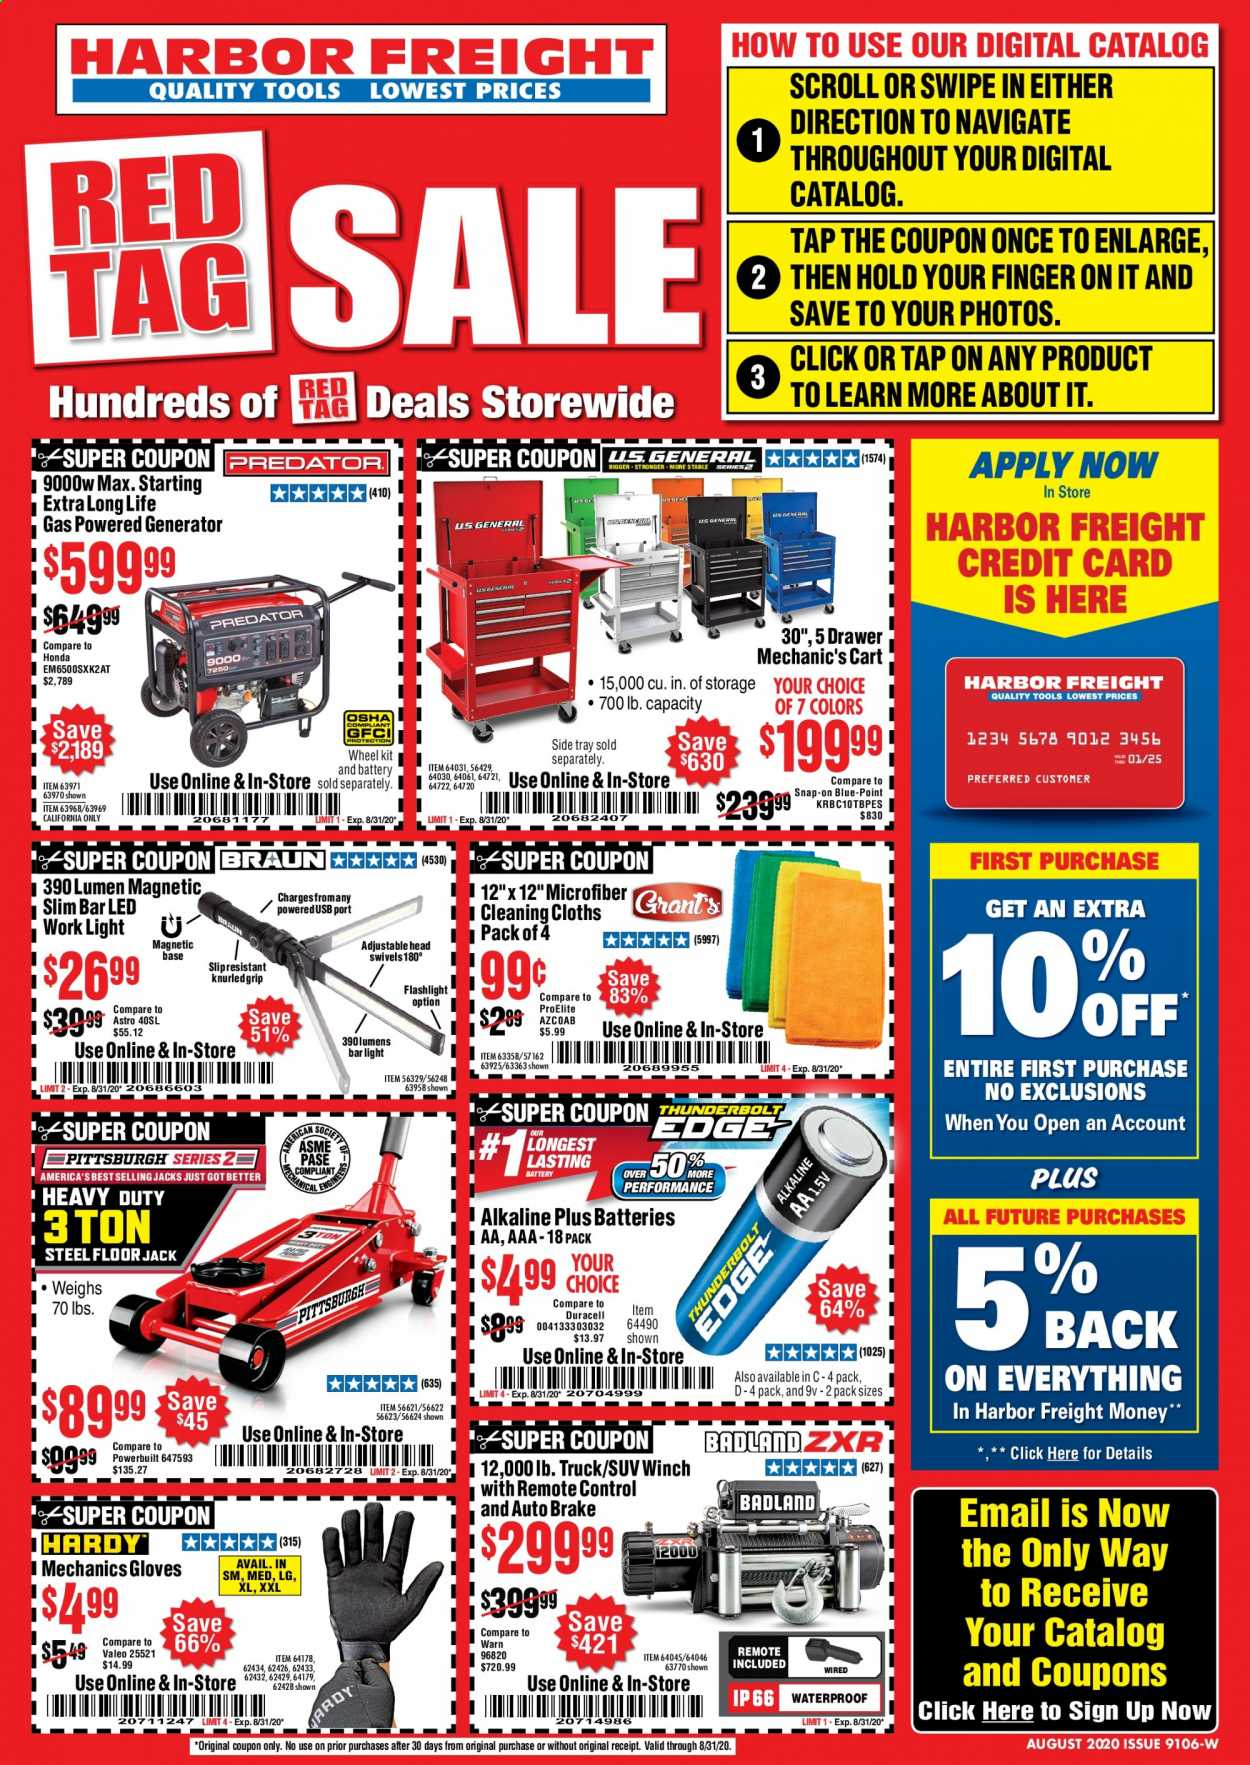 Harbor Freight Flyer - 08.01.2020 - 08.31.2020 - Sales products - tools, truck, generator, cart, floor jack. Page 1.